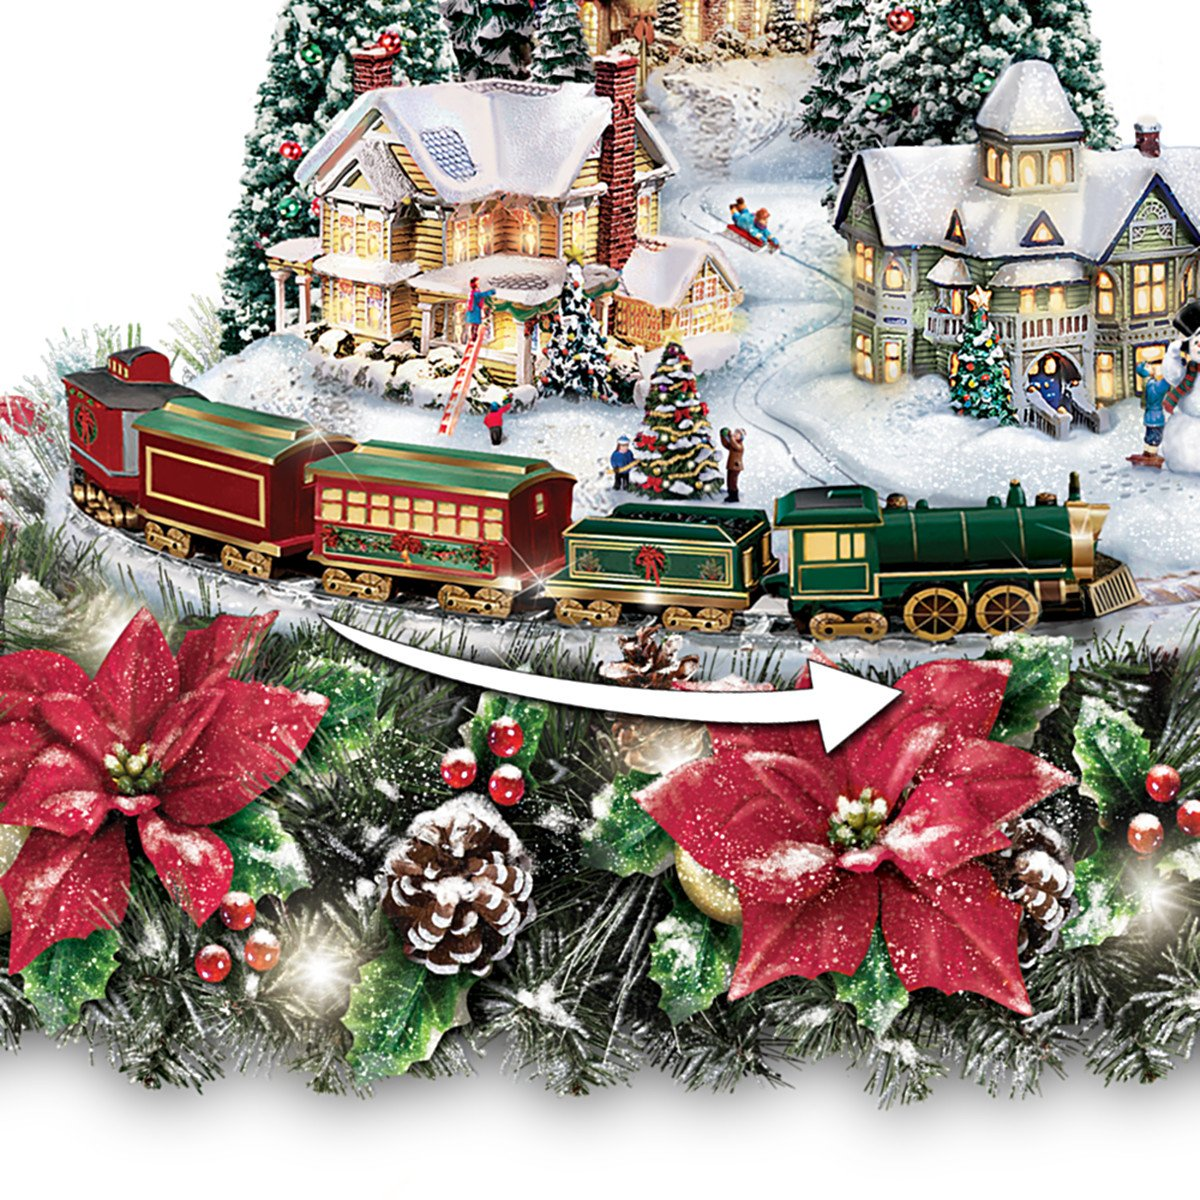 Thomas Kinkade Christmas Village Floral Centerpiece with Lights Music and Motion Close up of Train